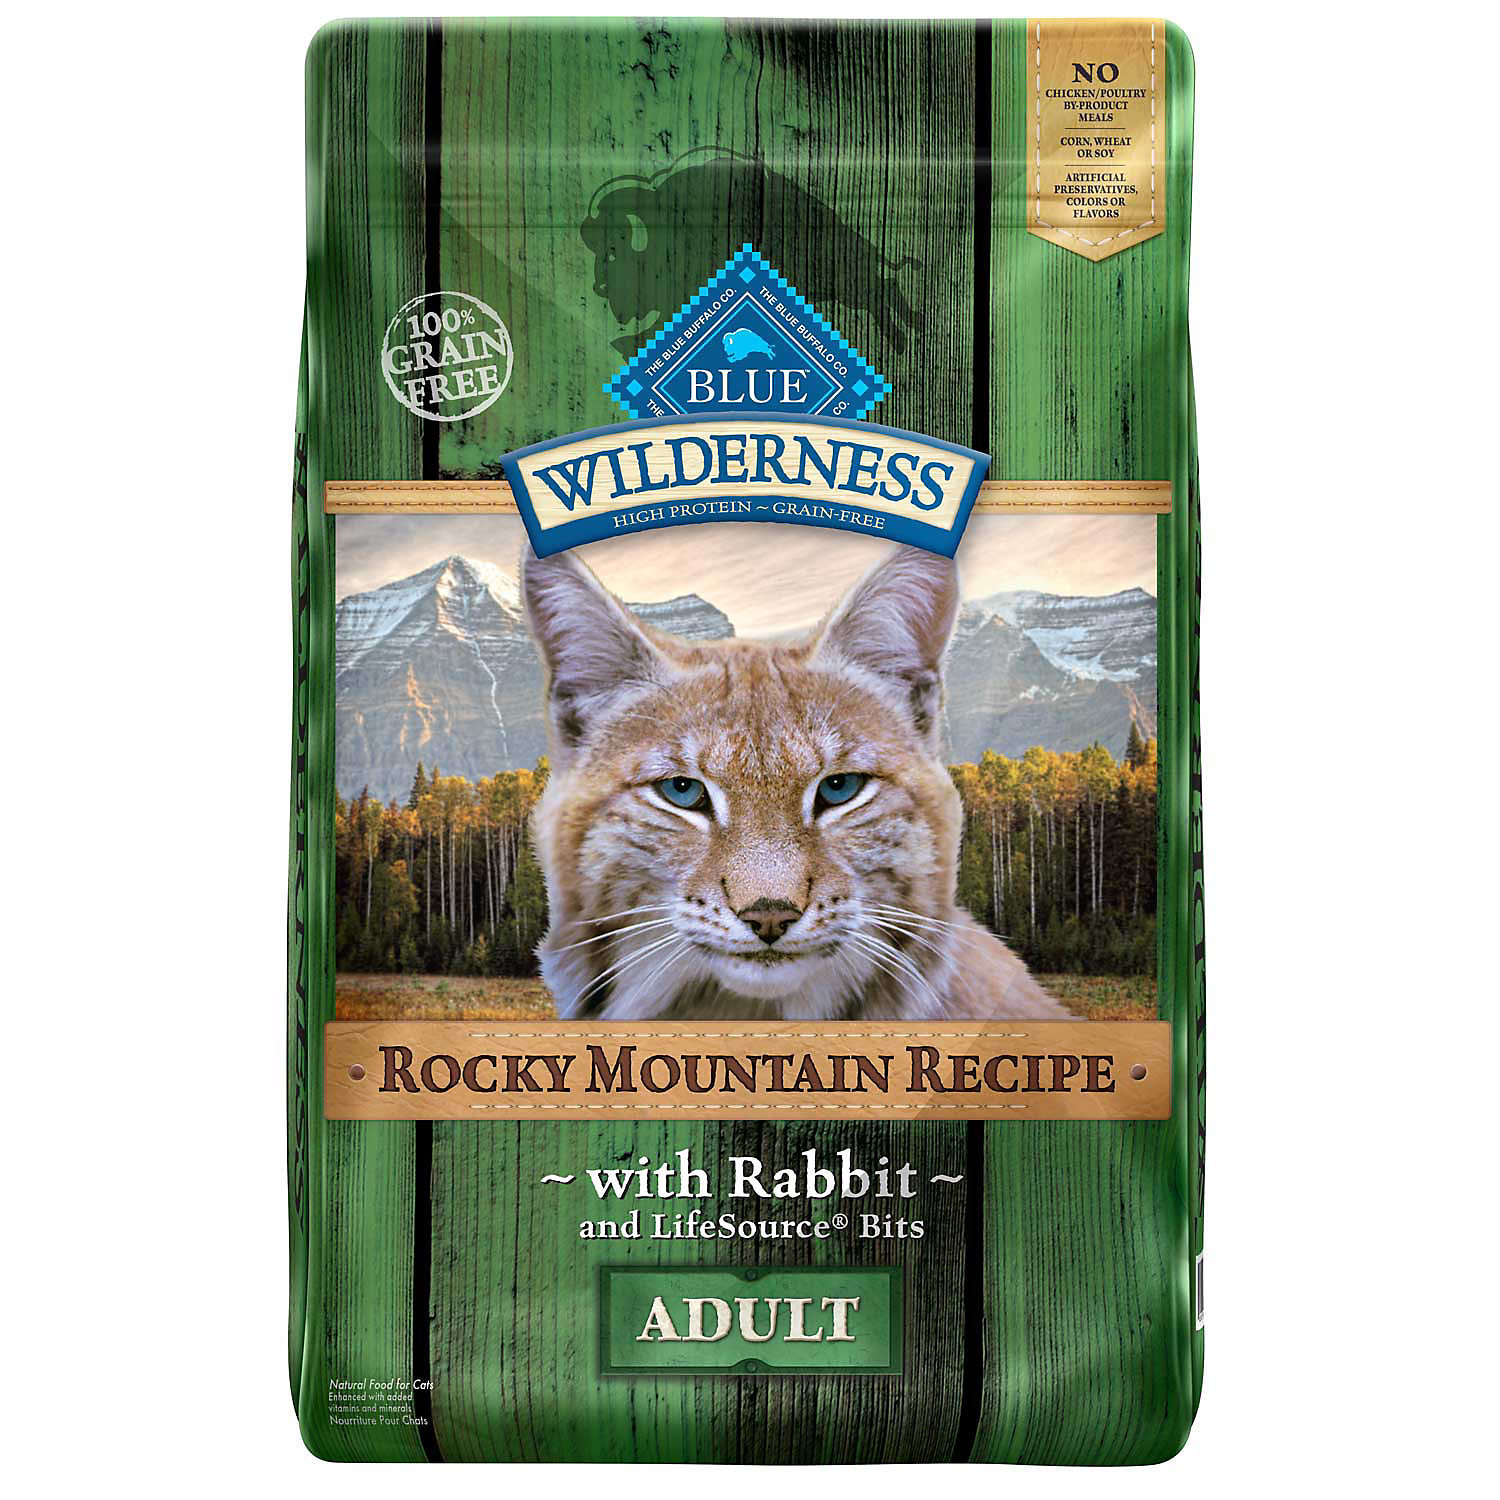 Blue Buffalo Wilderness Grain Free Rocky Mountain Rabbit Adult Cat Food, 4 lbs. (9/18) (A.J1)